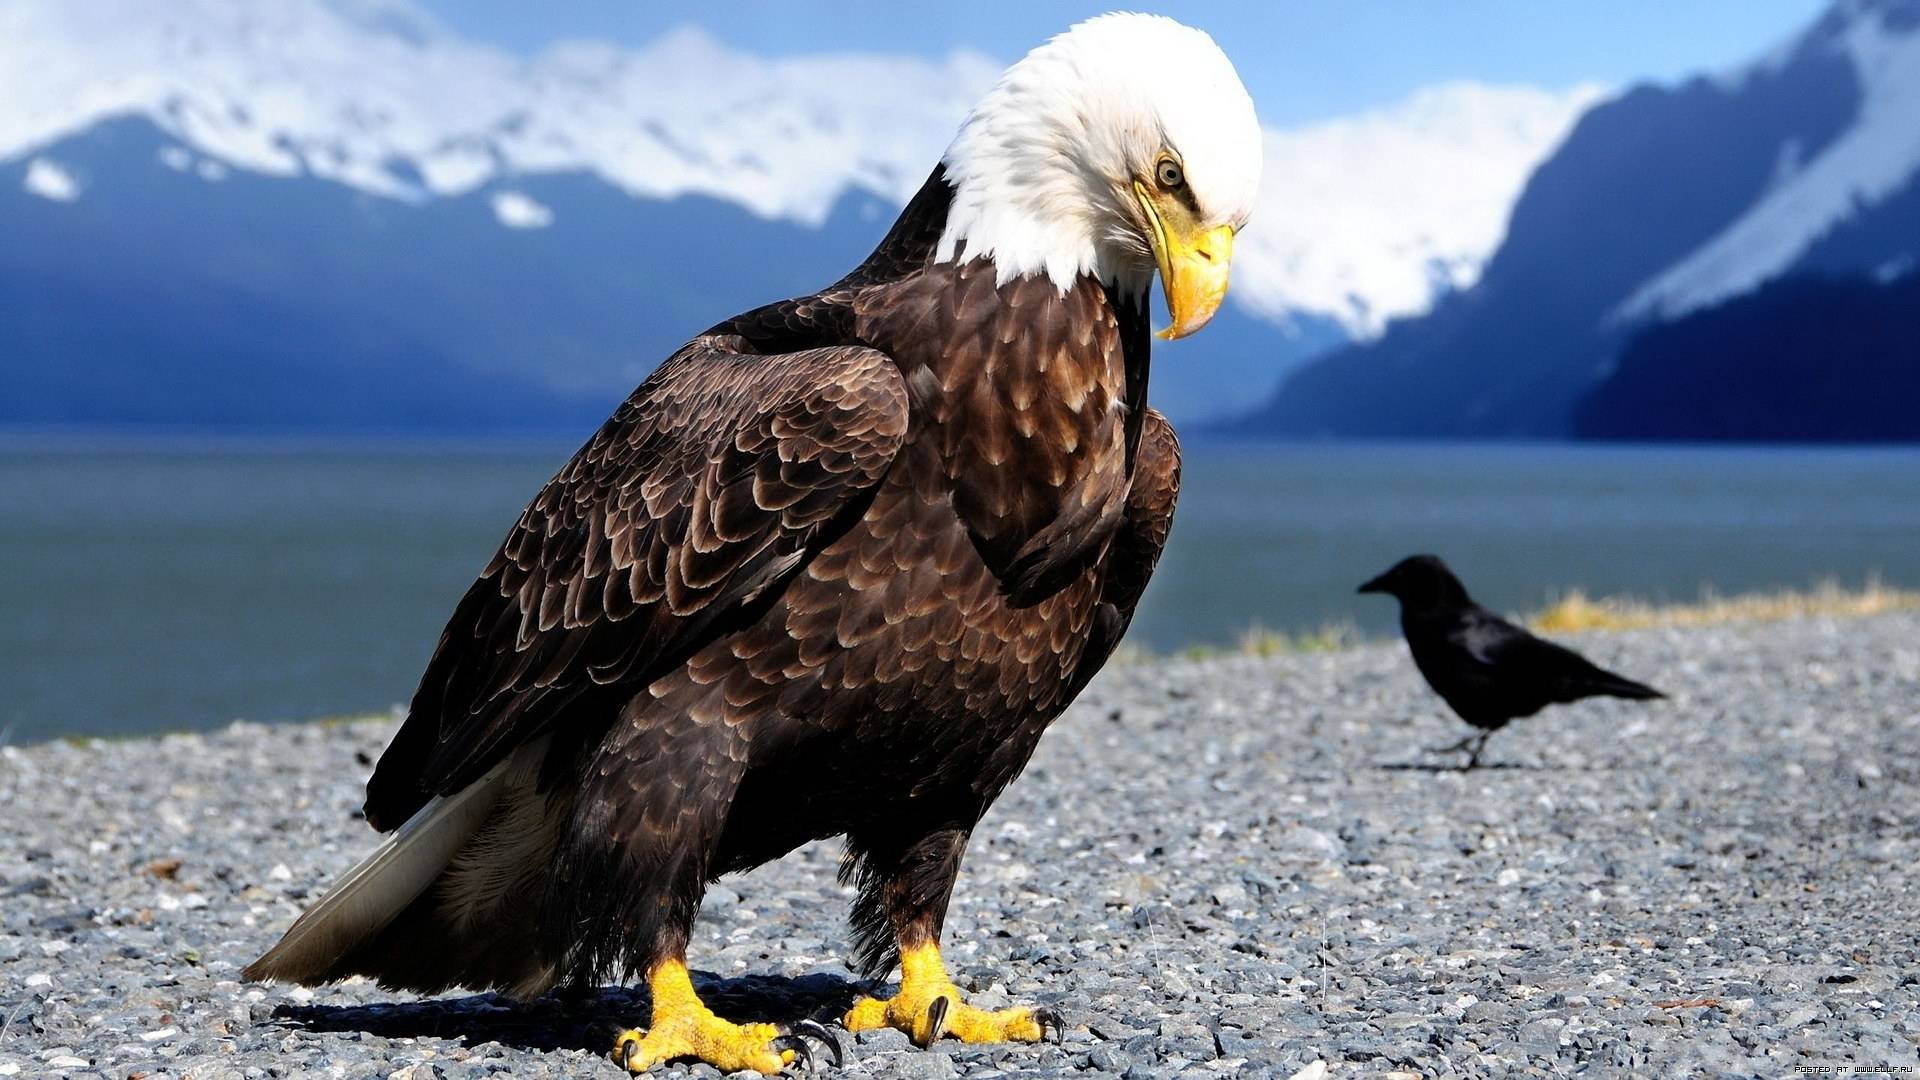 50278 download wallpaper Animals, Birds, Eagles screensavers and pictures for free